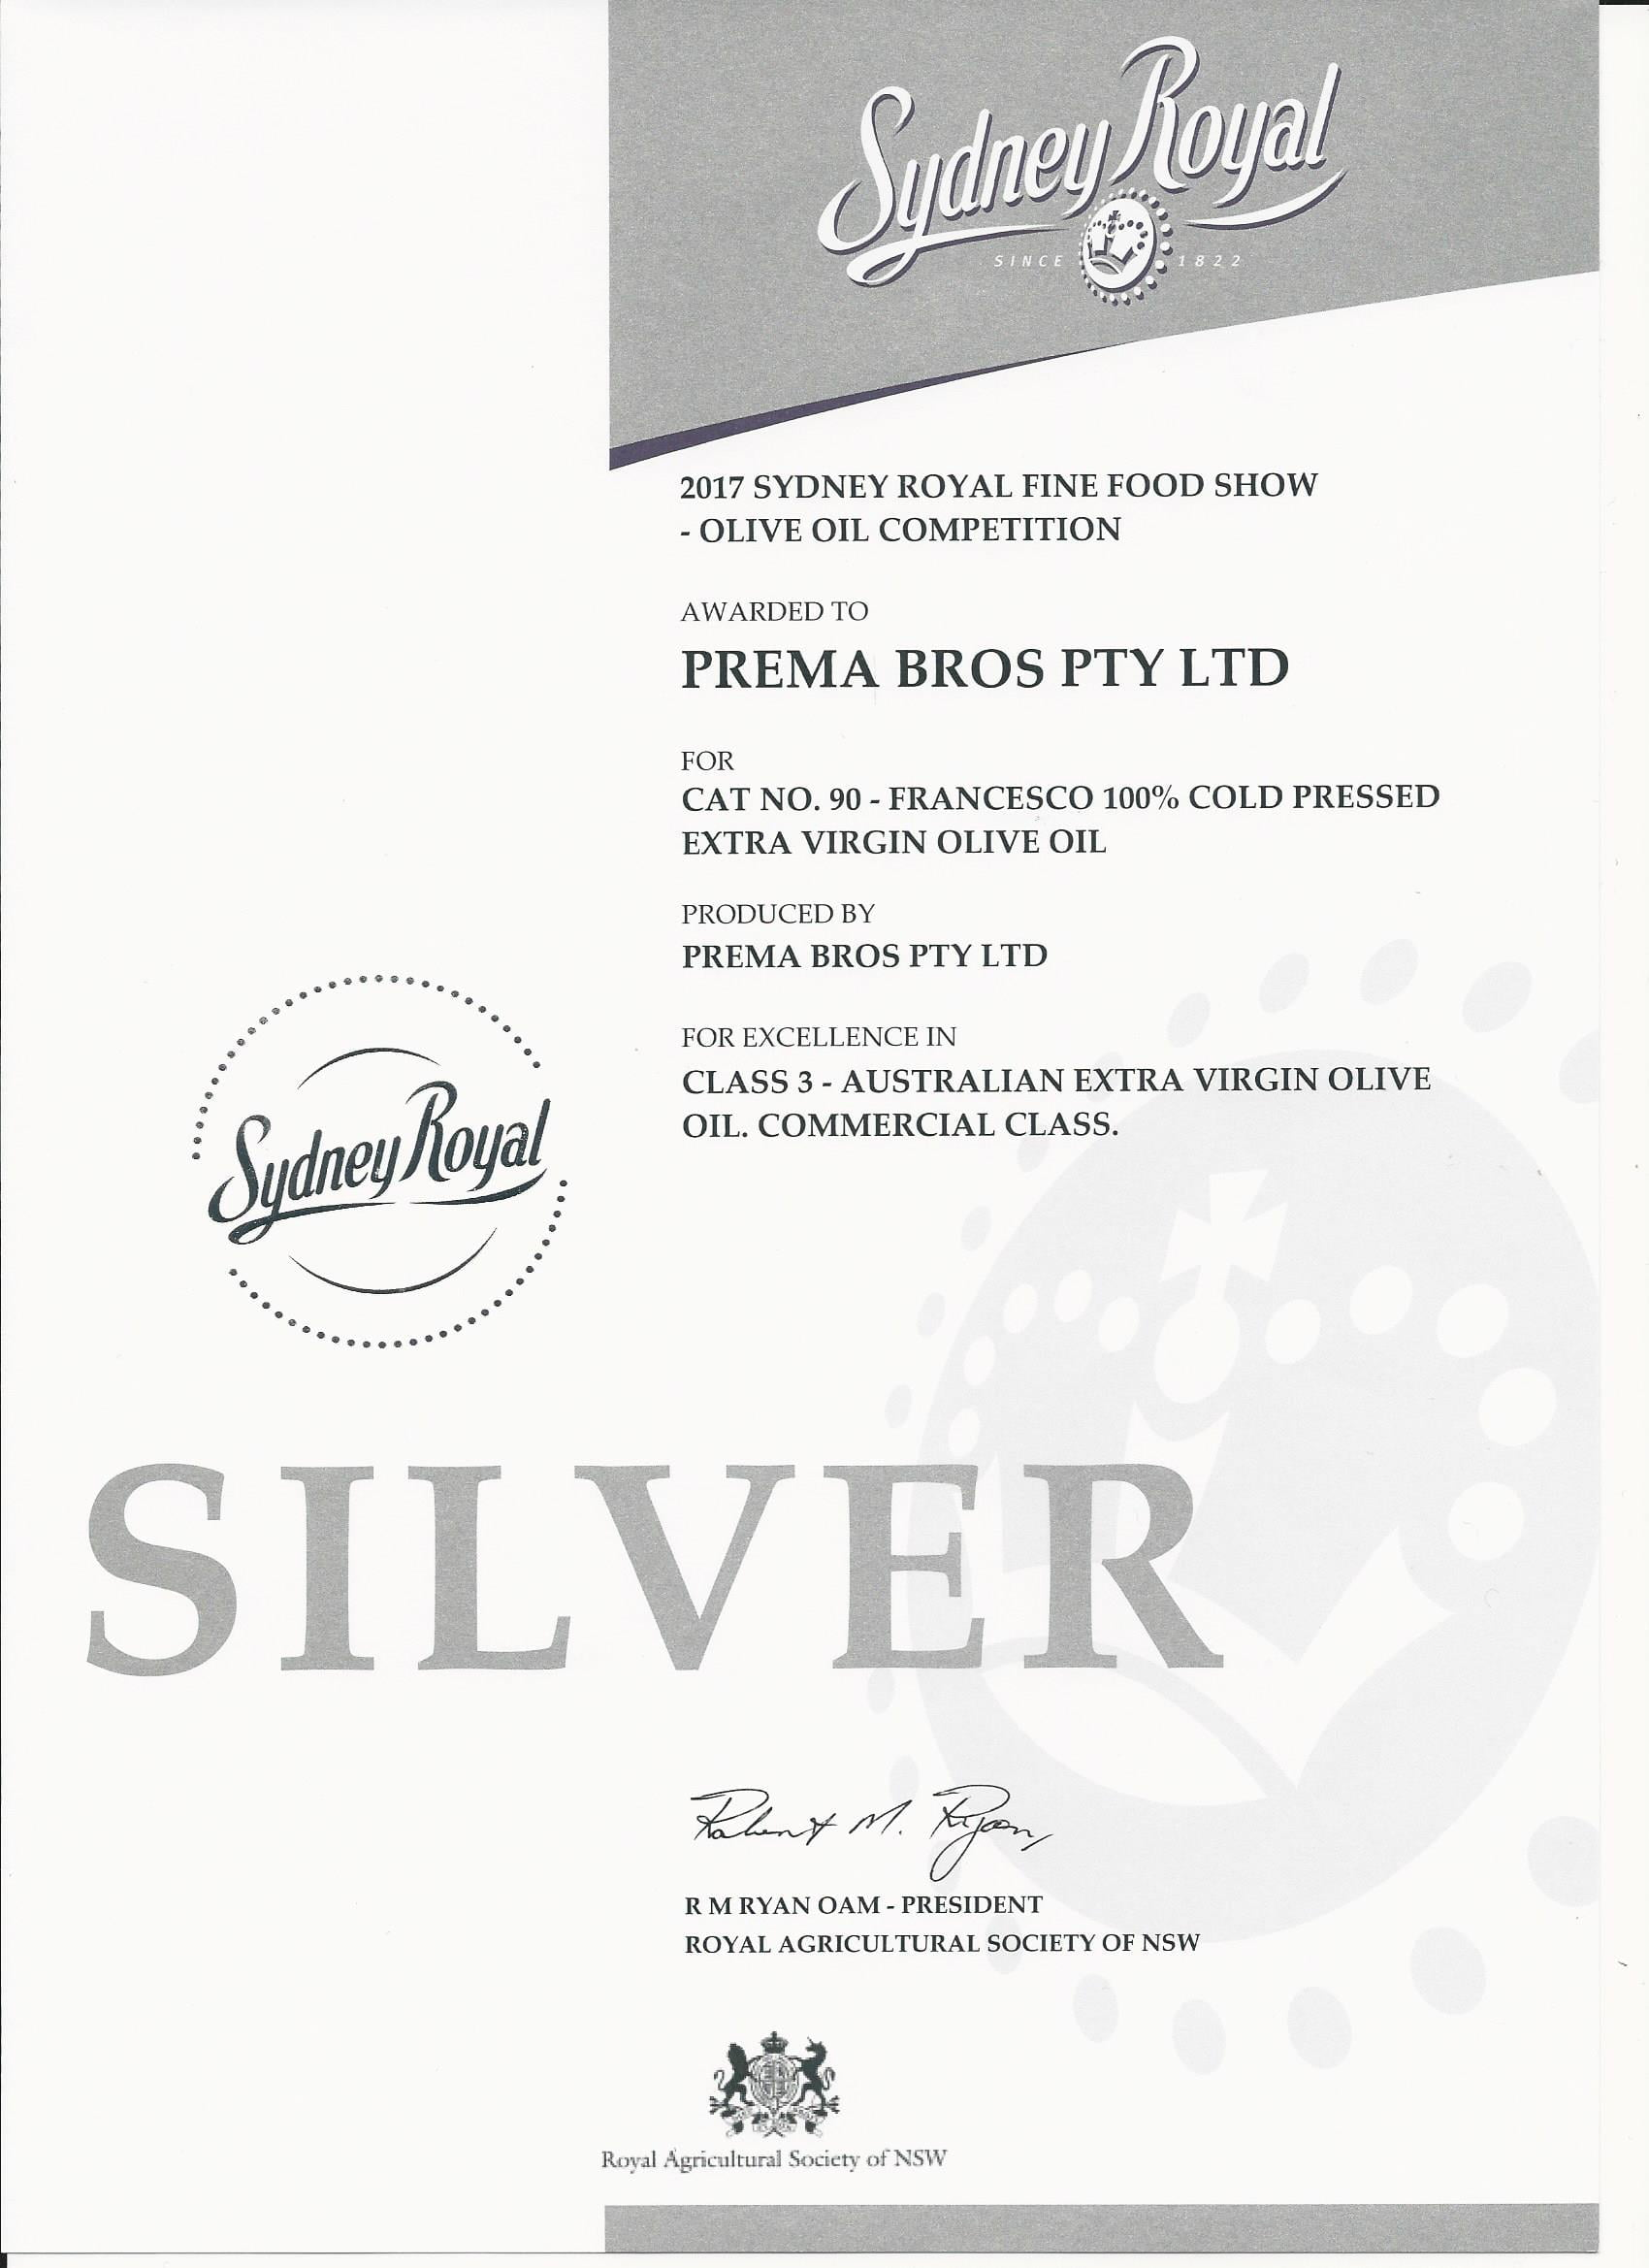 Sydney Royal Silver award for Olive Oil